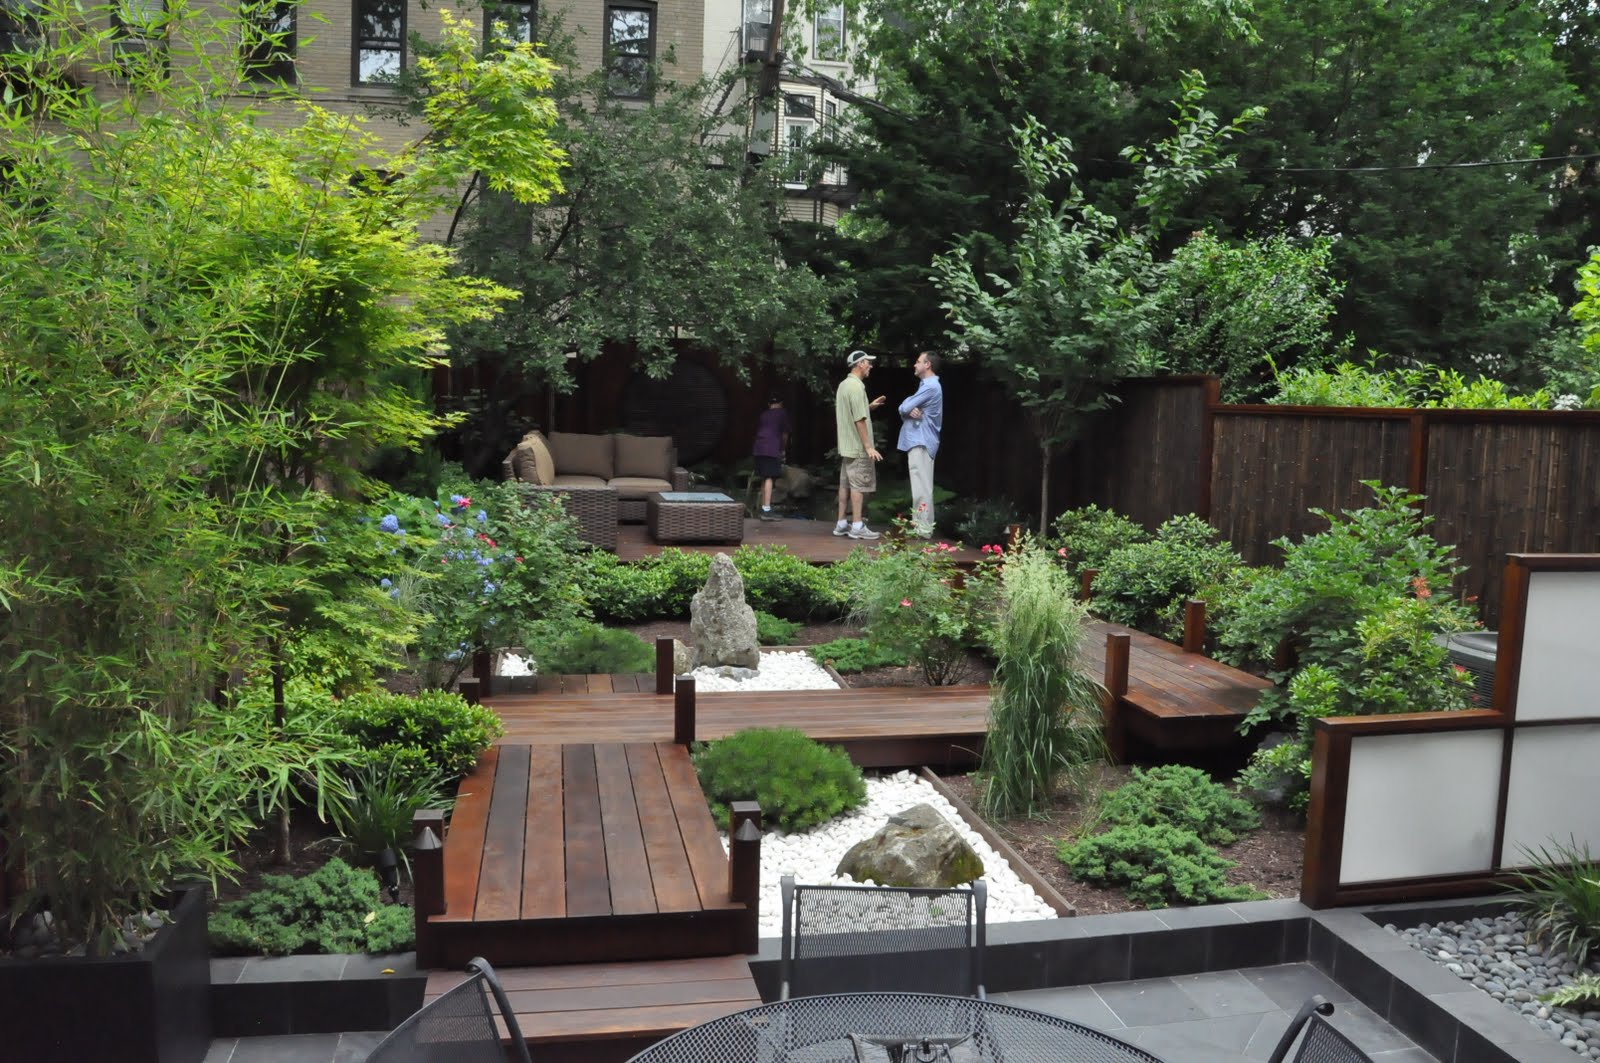 The hoboken journal hoboken secret garden tour part 1 for Japanese garden backyard designs